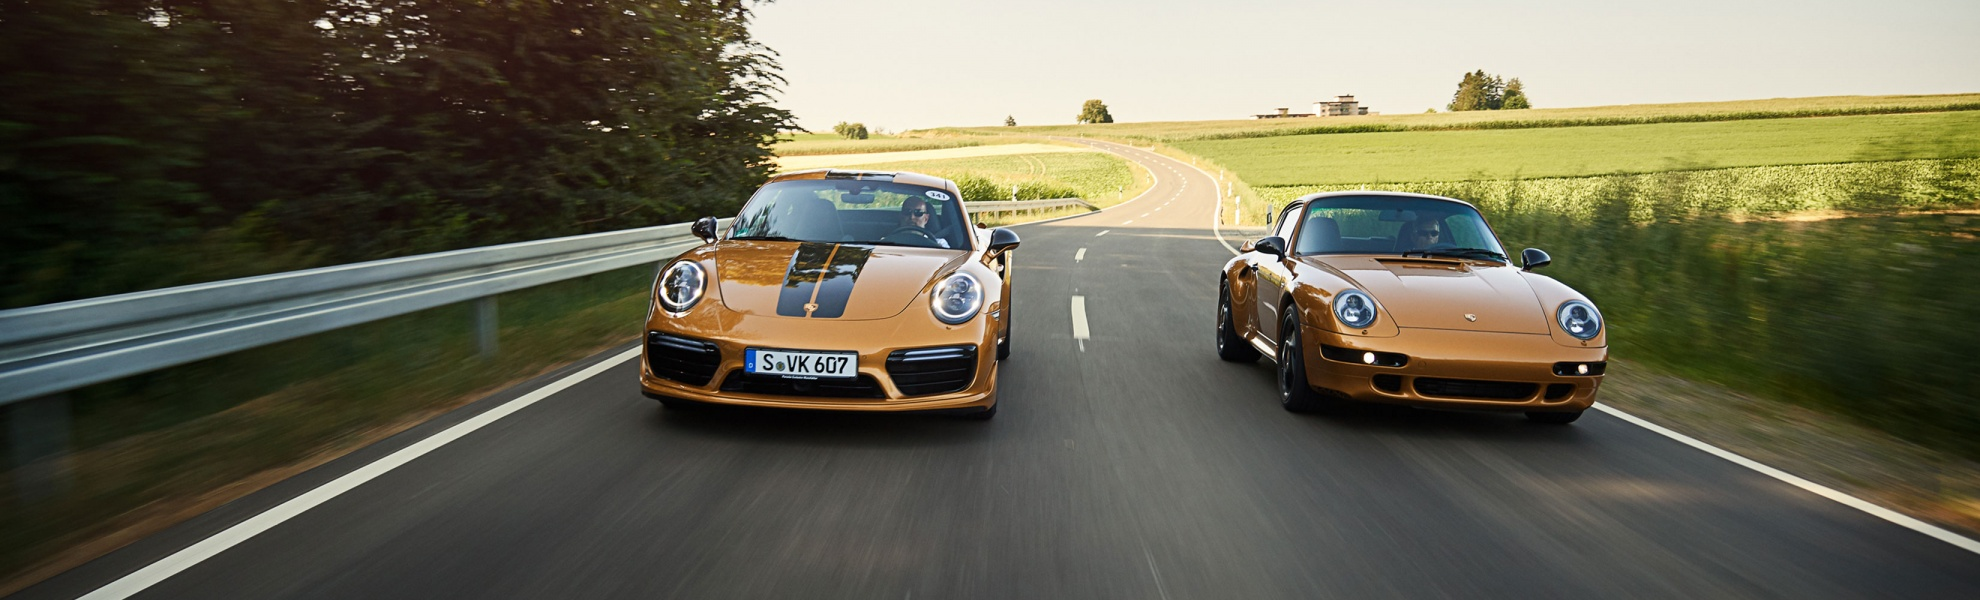 911_turbo_s_exclusive_series_993_turbo_the_reveal_classic_project_gold_2018_porsche_ag.jpg